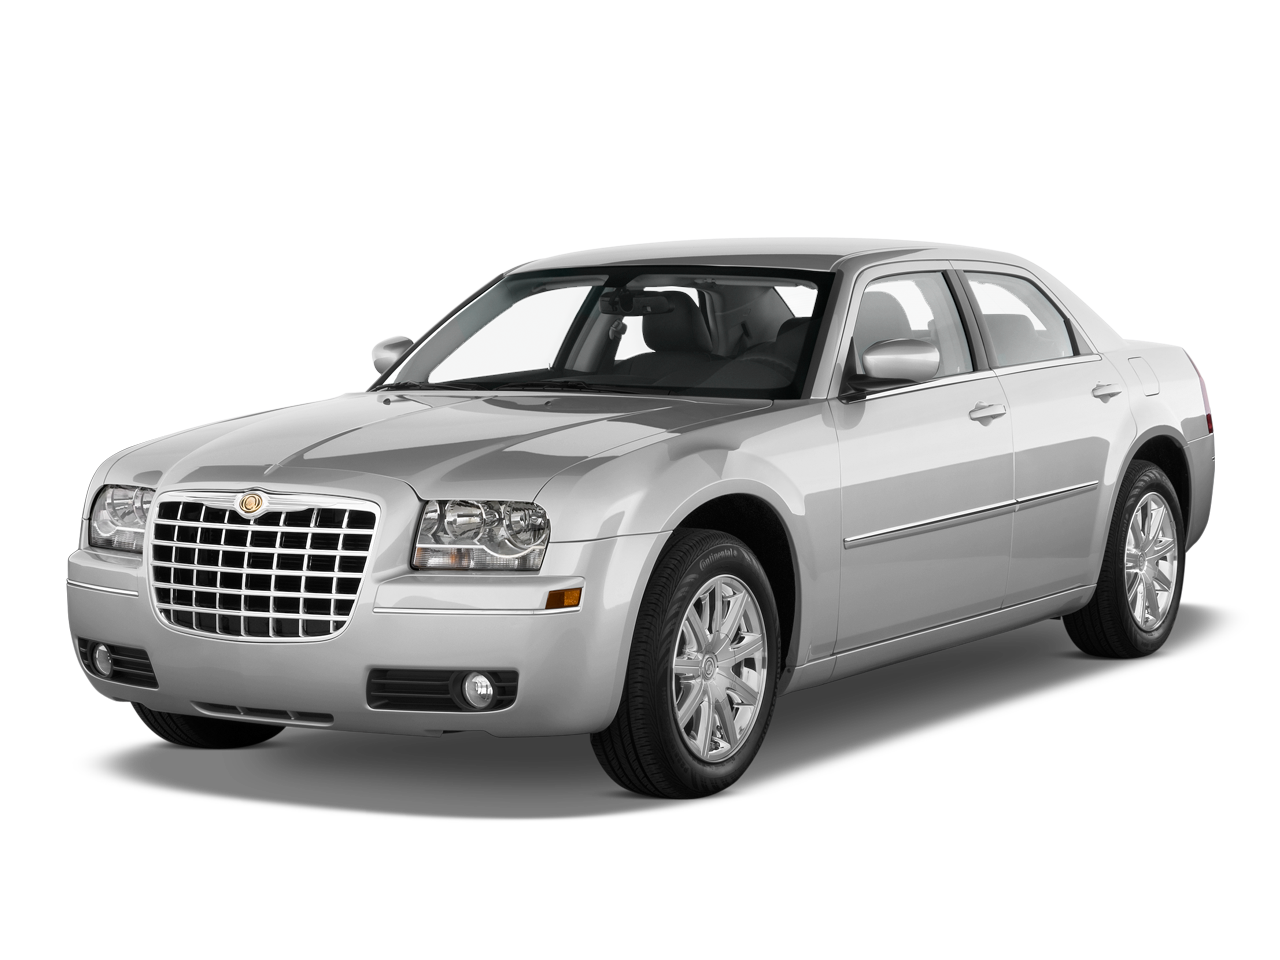 2009 chrysler 300 overview msn autos. Black Bedroom Furniture Sets. Home Design Ideas